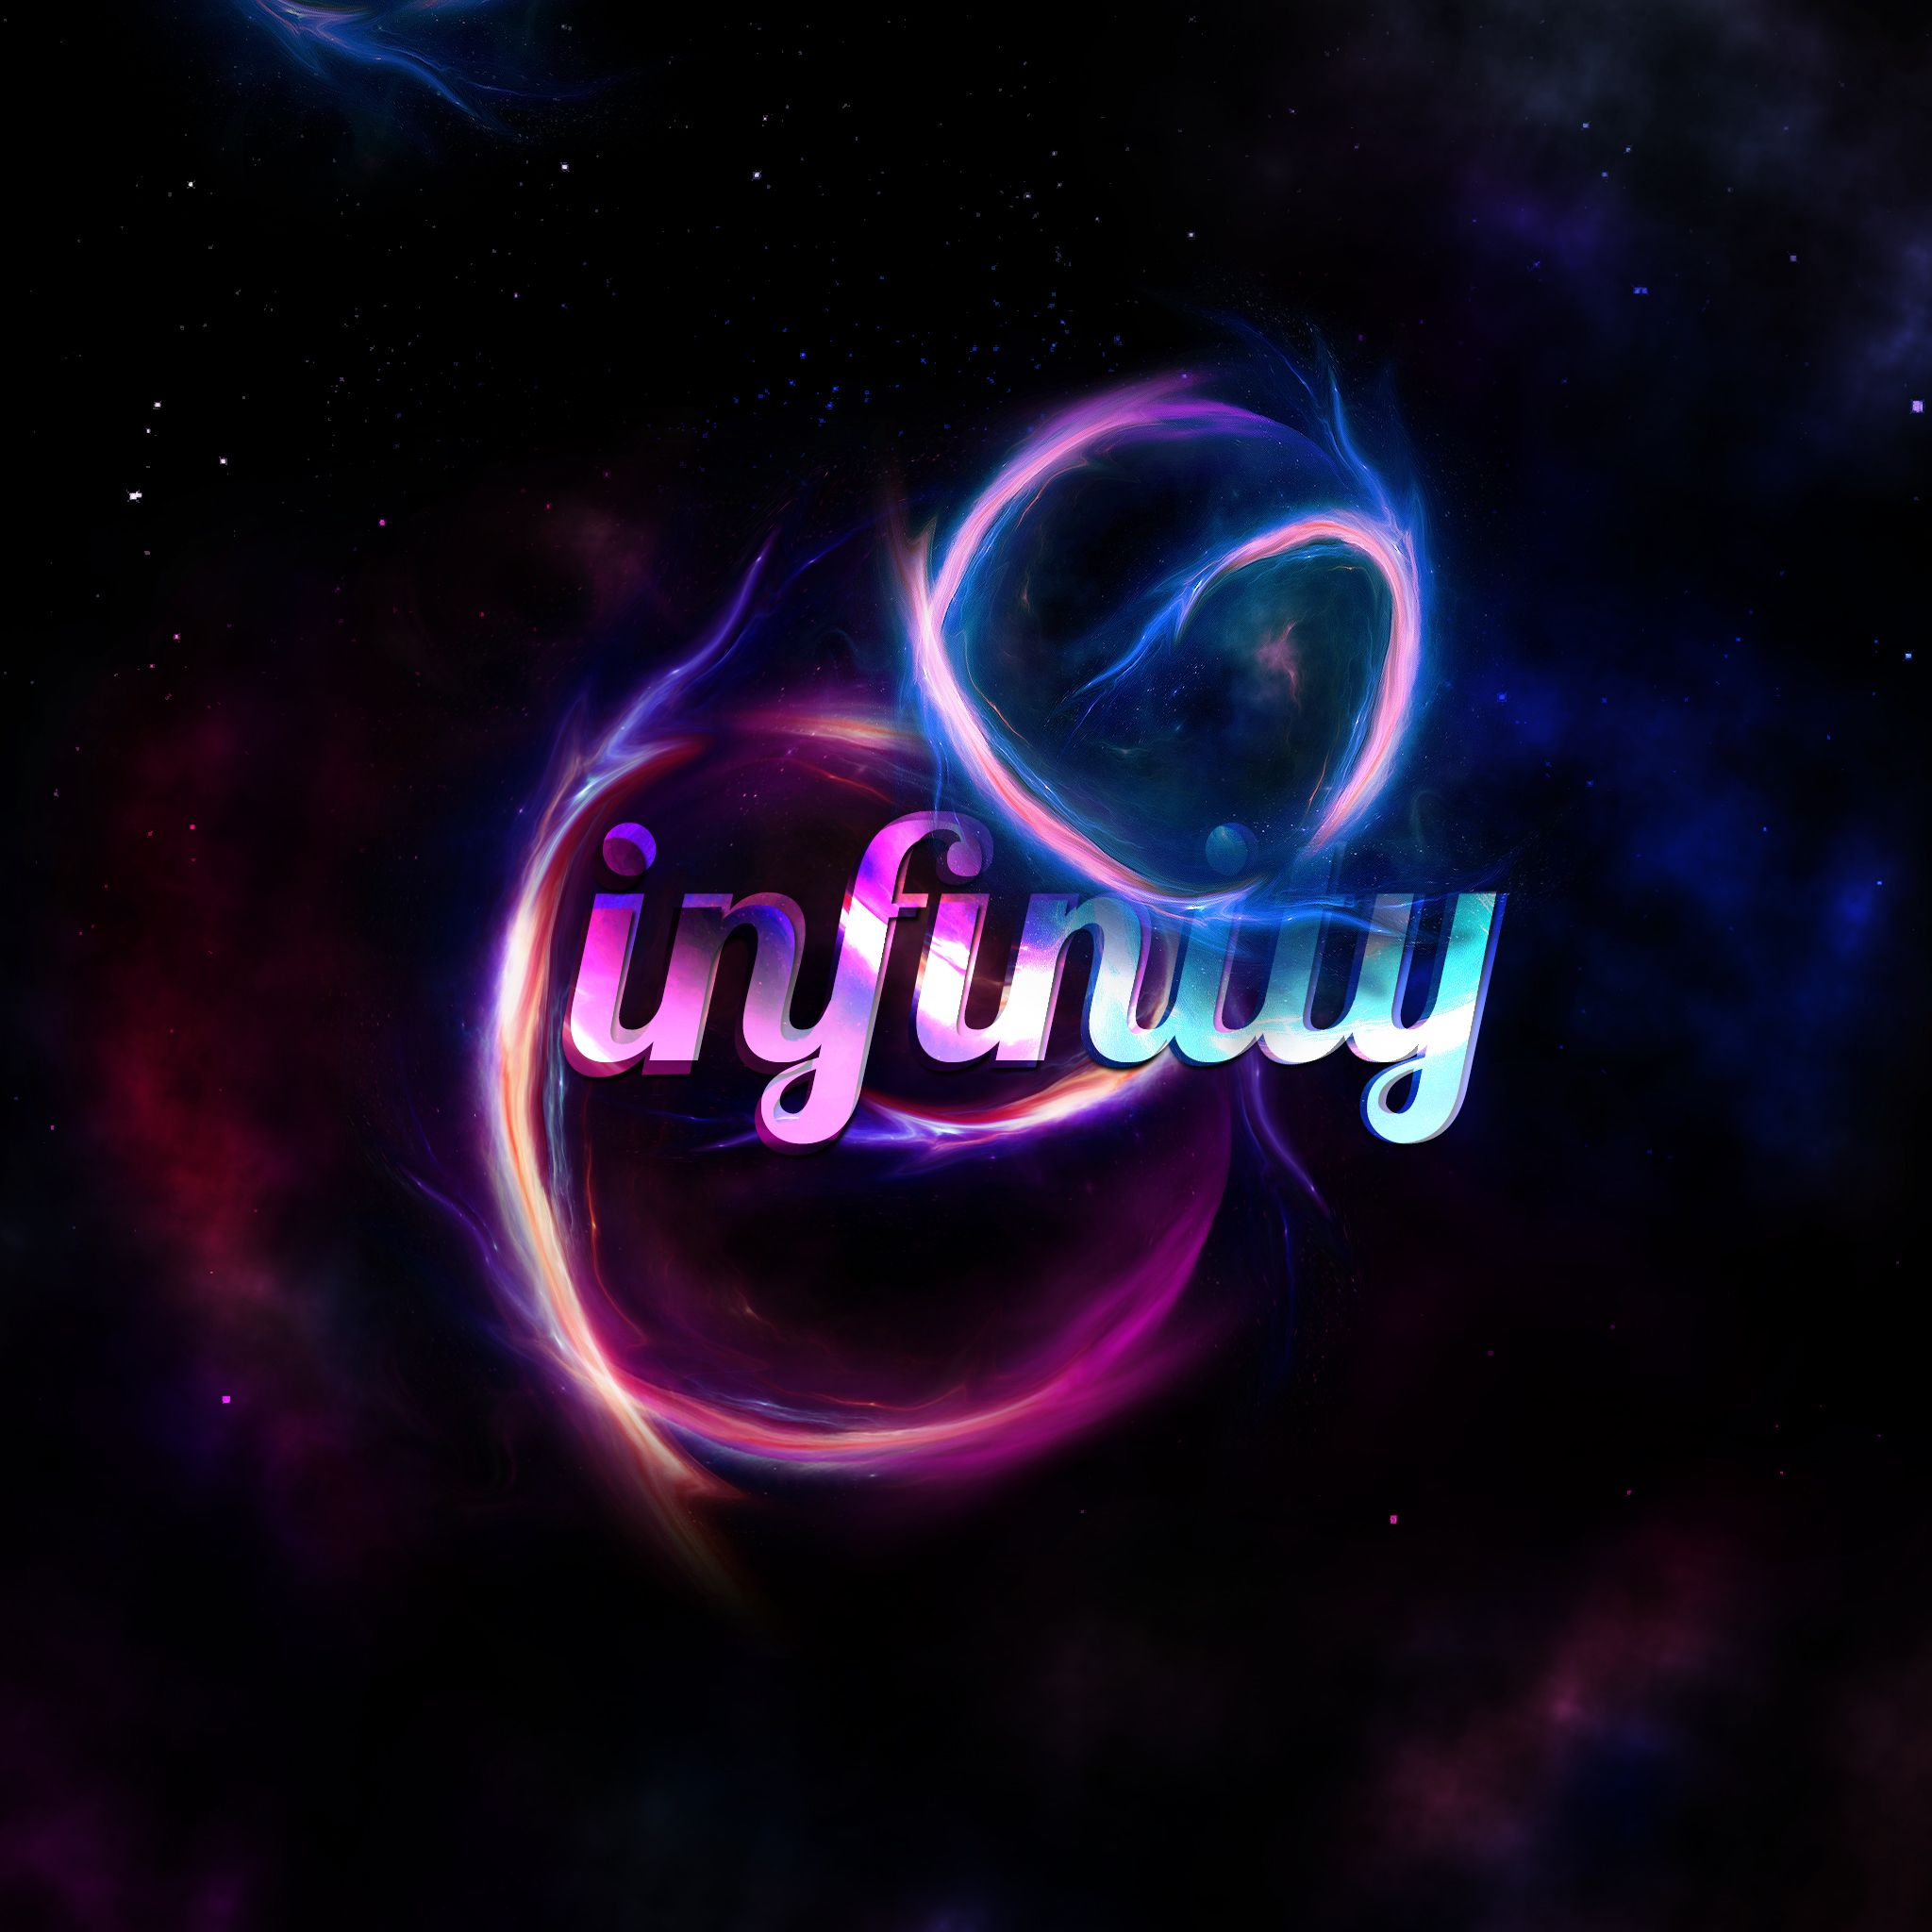 Infinity Sign Wallpaper Galaxy image 508 Infinity